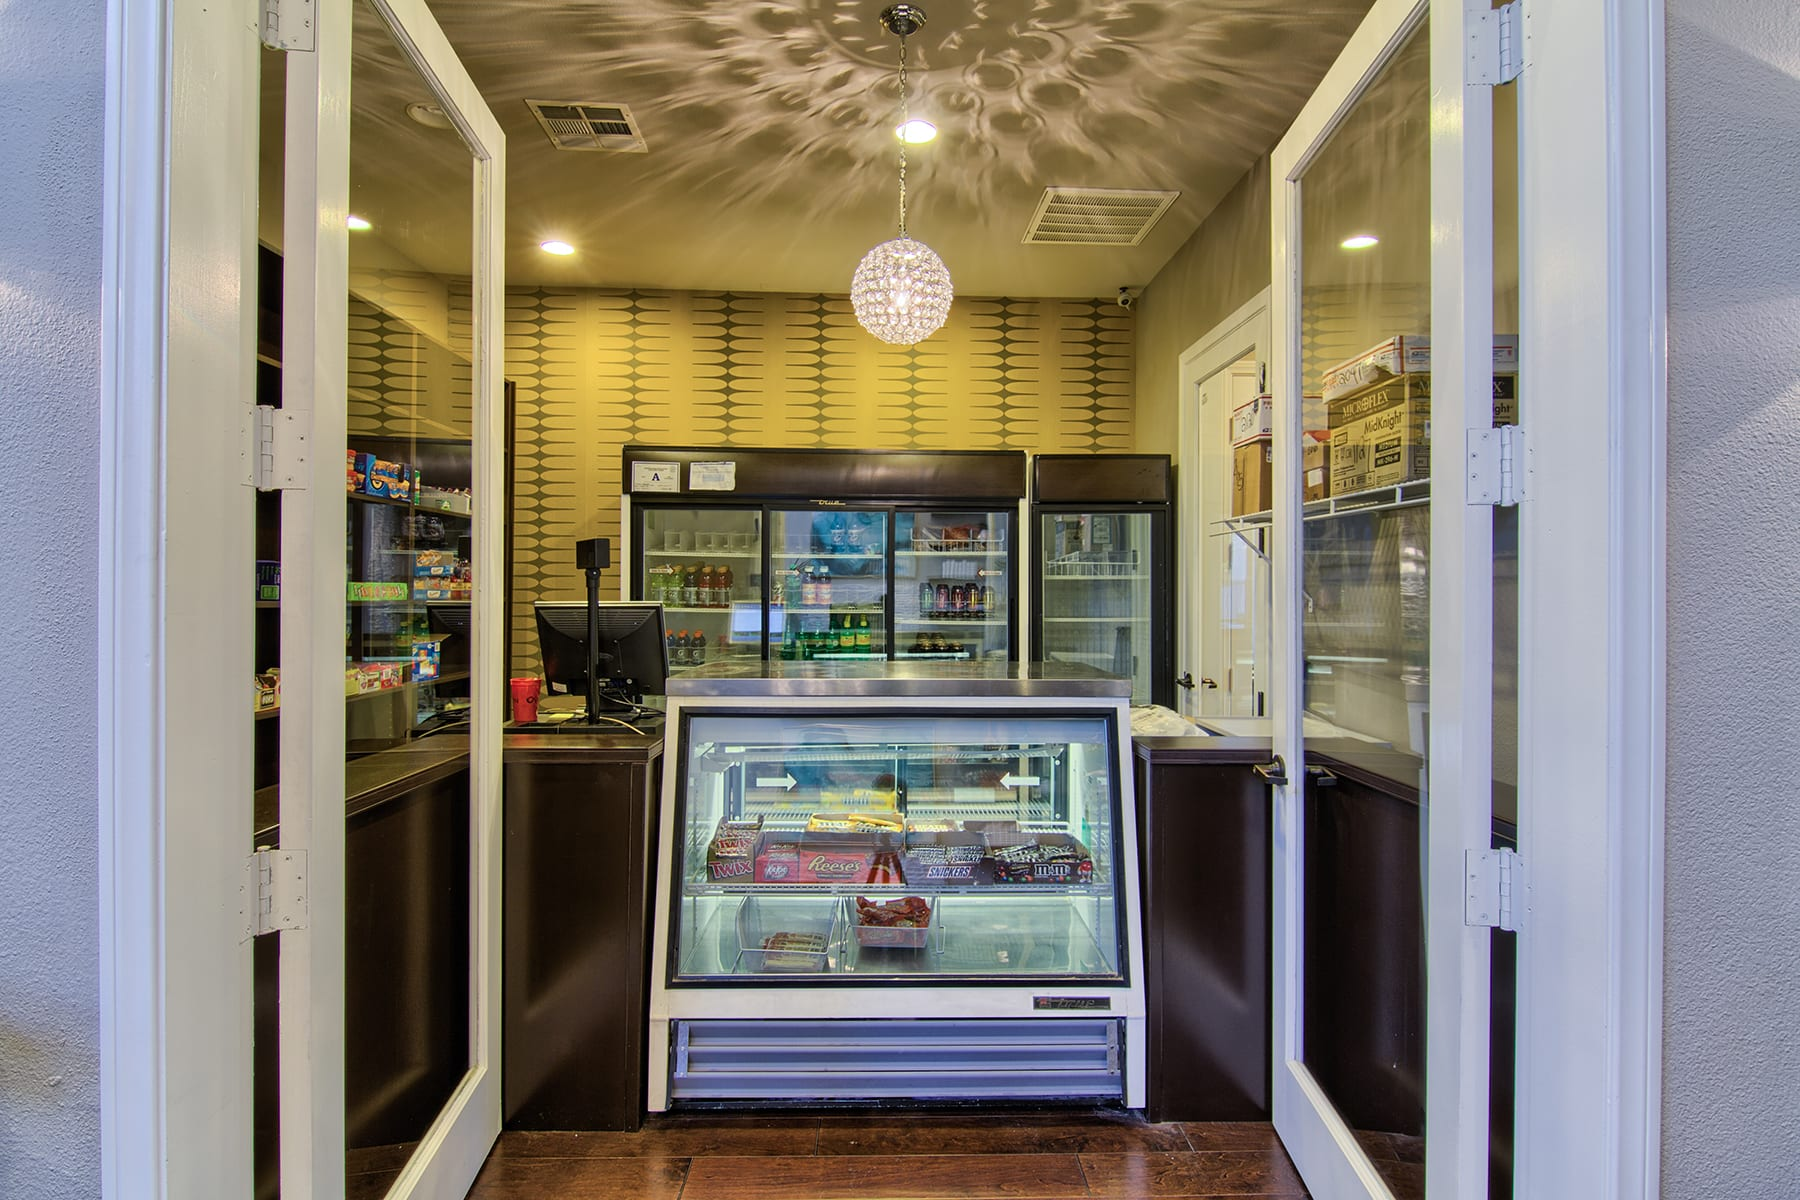 Viviani's on site convenience store with cold drinks and a wide selection of candy.